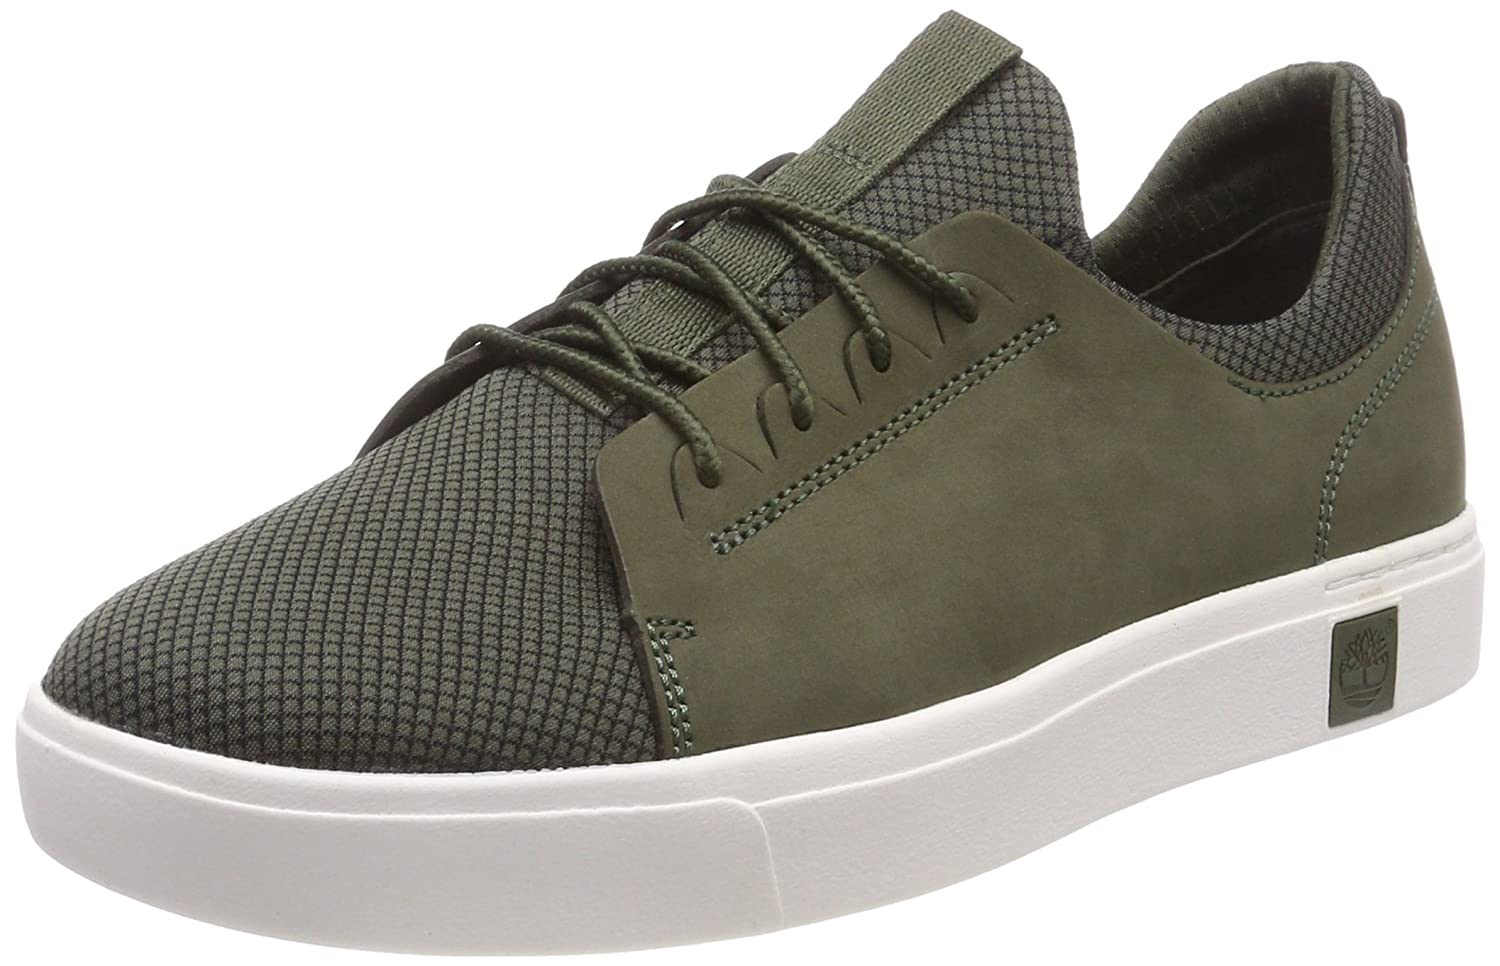 Timberland Amherst, Zapatillas Bajas para Hombre